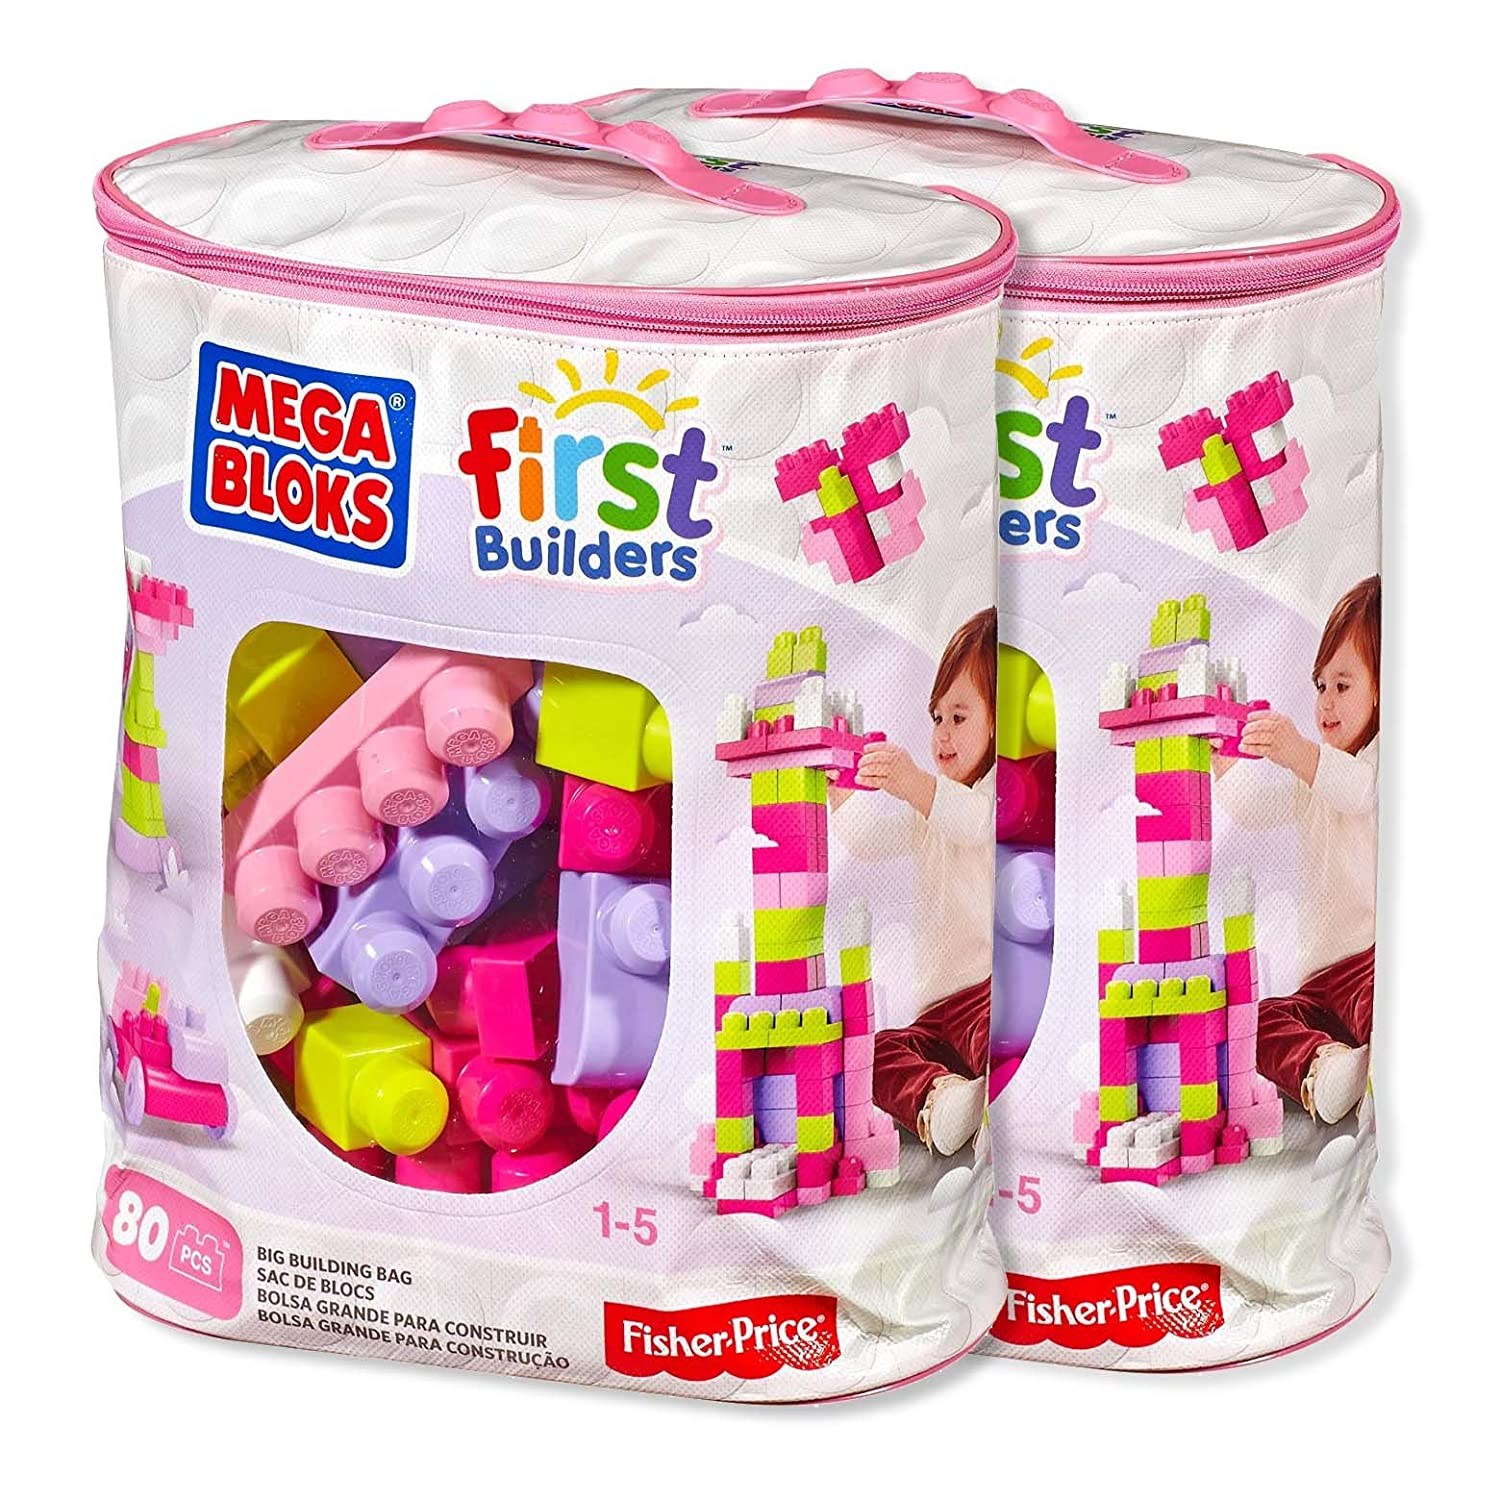 Mega Bloks siBWNM 80 Piece Big Building Bag, Classic, Pink, 2 Units Review